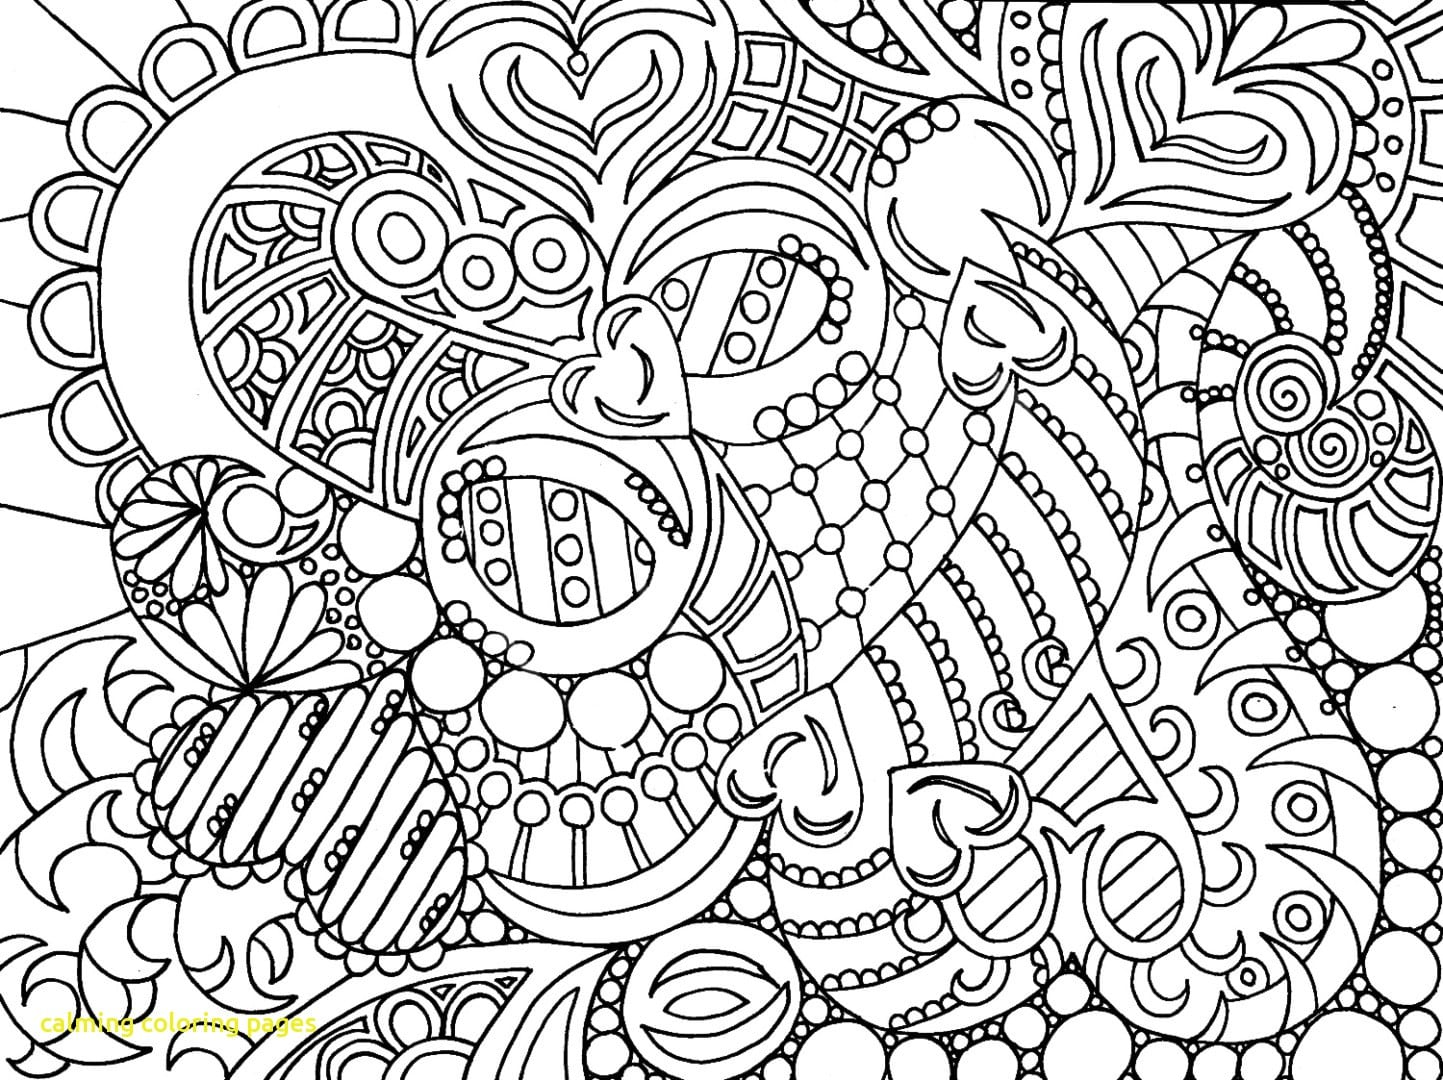 Color Wheel Worksheet Keller Isd Schools additionally Lophotrochozoa likewise Bakugan Coloring Pages For Kids in addition Bakugan Cl furthermore paring Numerators And Denominators Freebie Best Of Fourth Grade. on arthropod worksheet answers